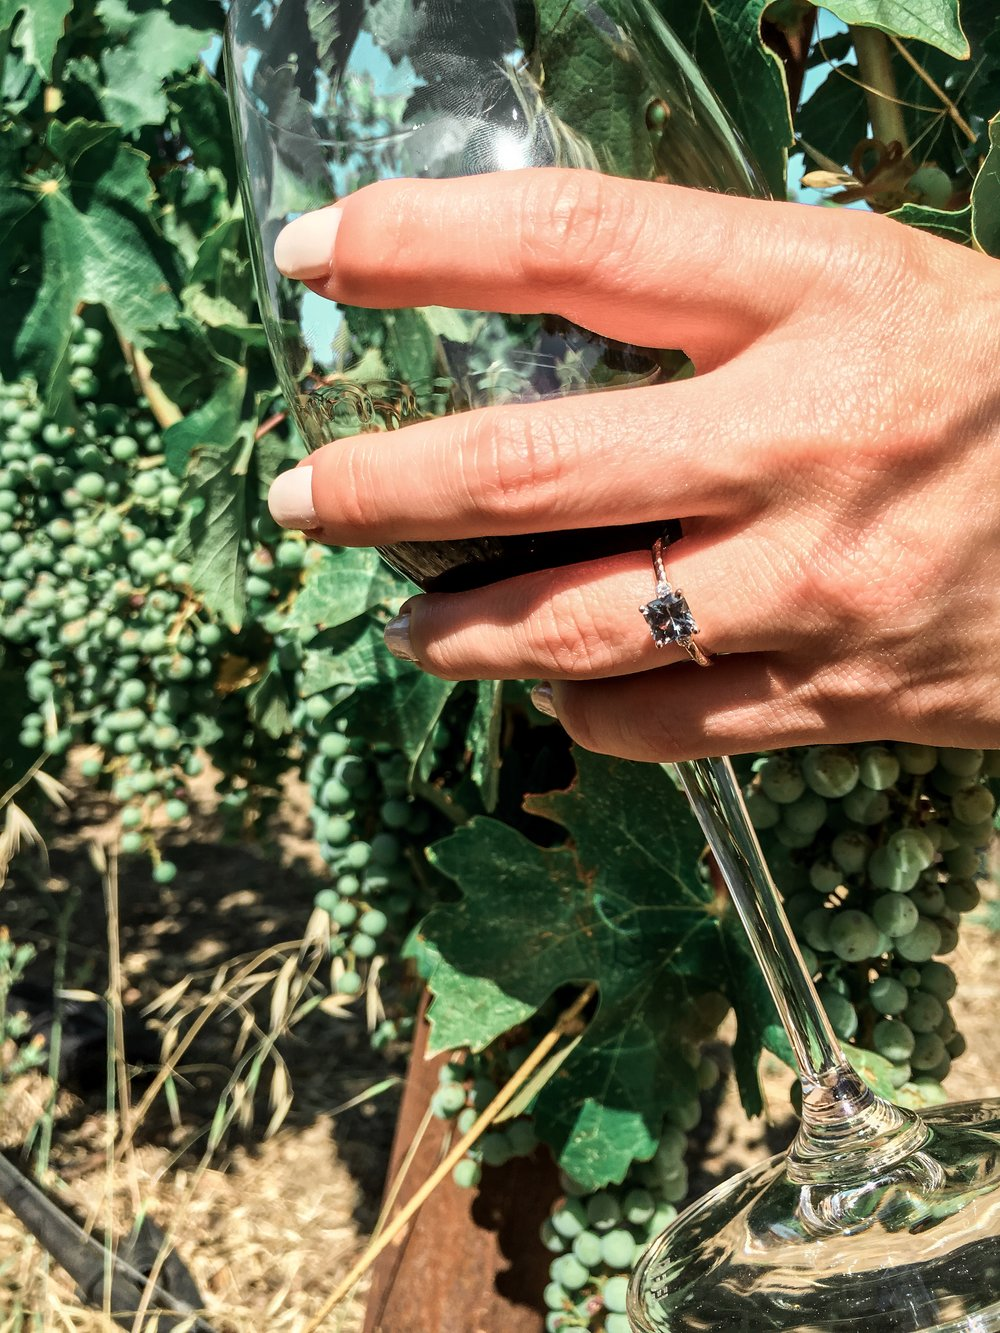 Had to grab a picture of the ring with those grapes!